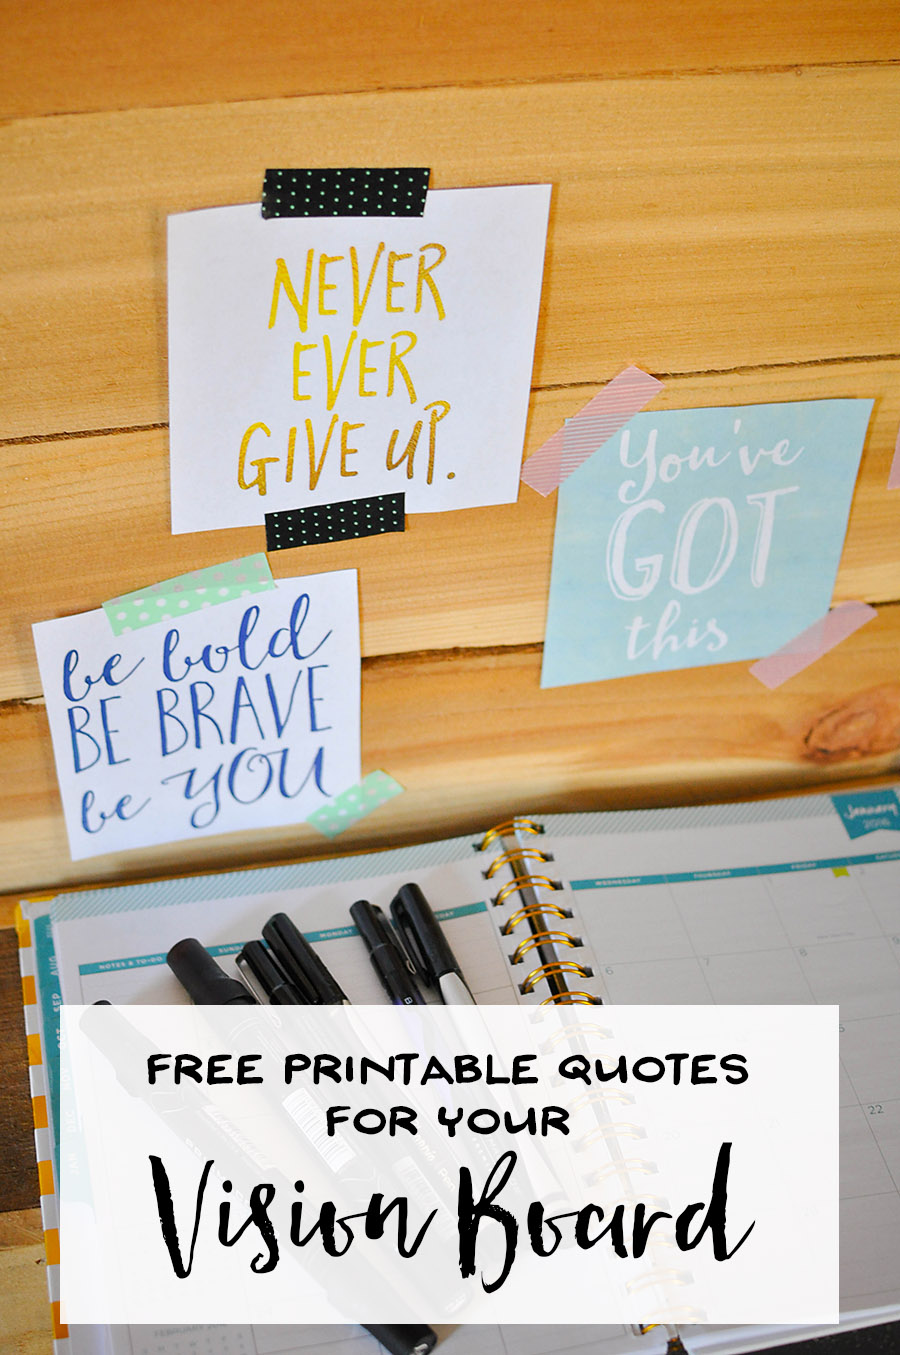 Free Printable Quotes for a Vision Board - Our Handcrafted Life